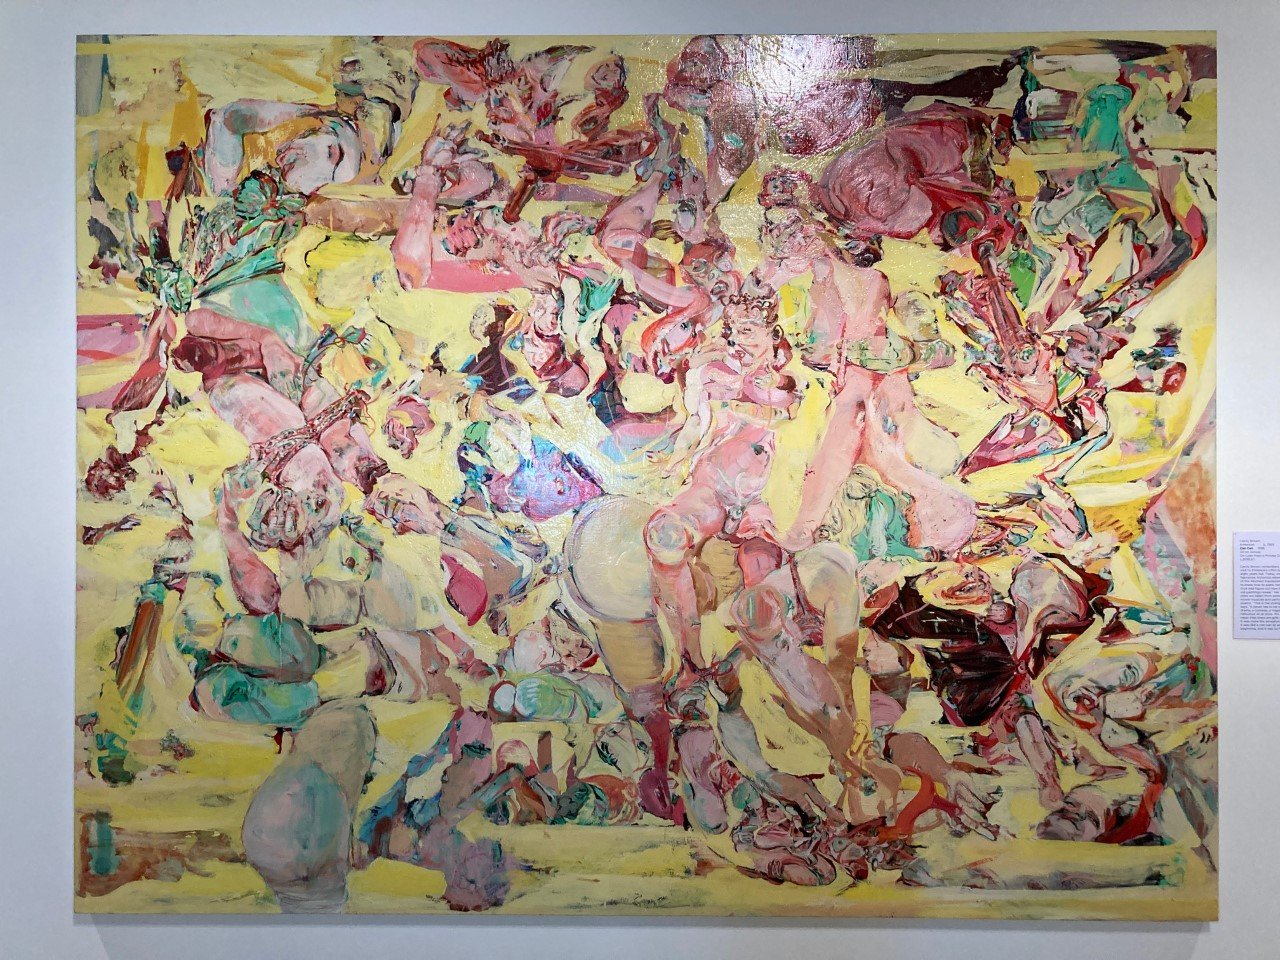 Cecily Brown Can Can, 1988. Oil on canvas. On loan to Cummer Museum from a private collection